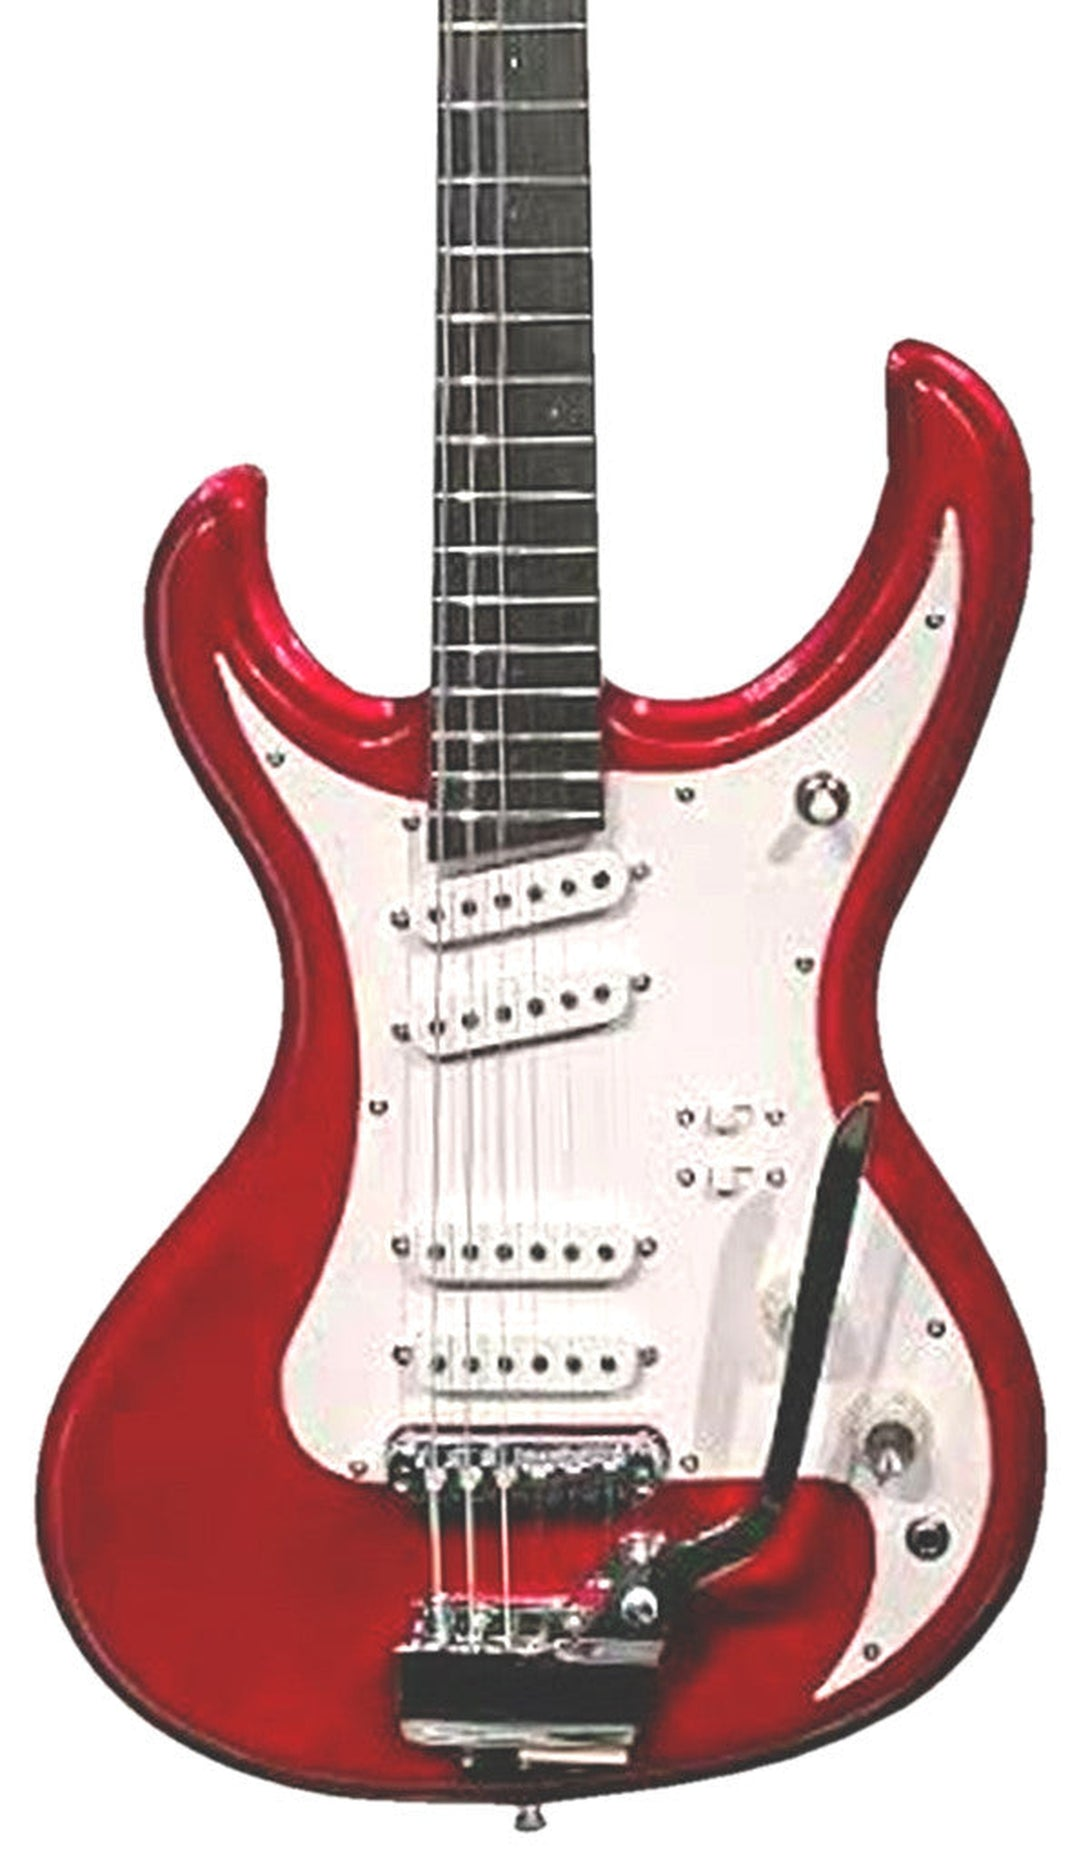 Eastwood Guitars LG 150T Metallic Red Featured